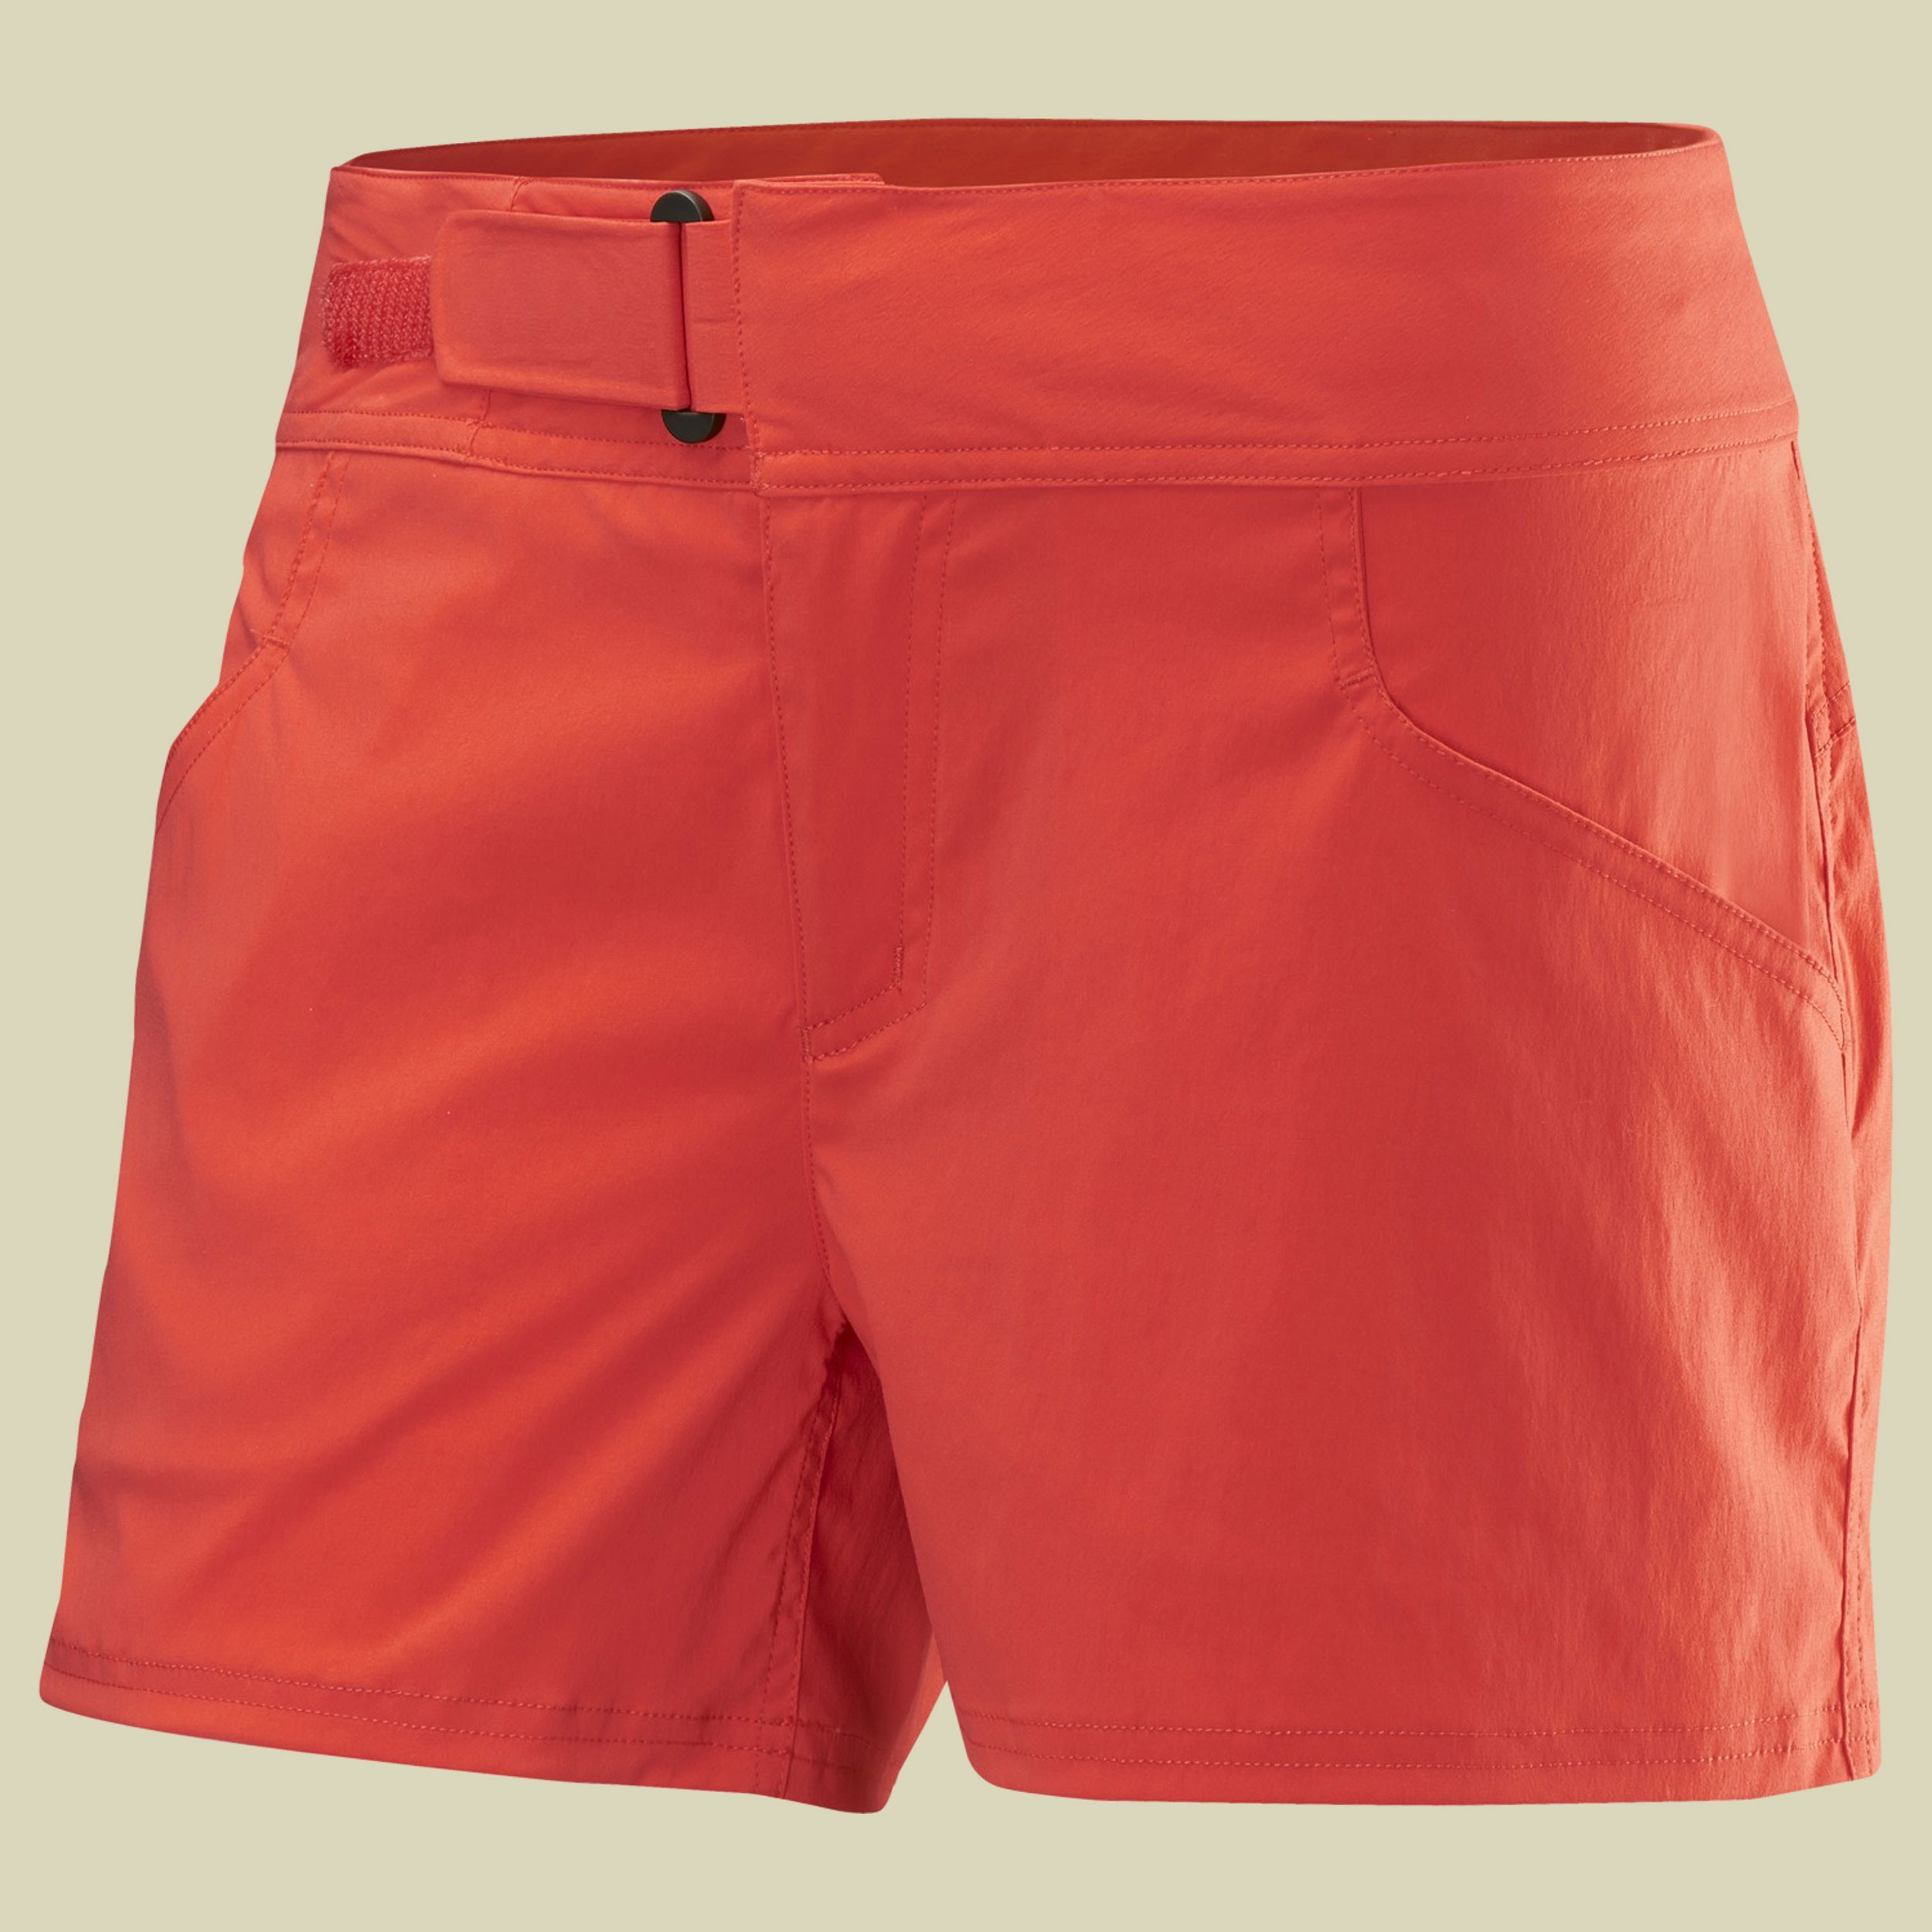 Amfibie II Shorts Women